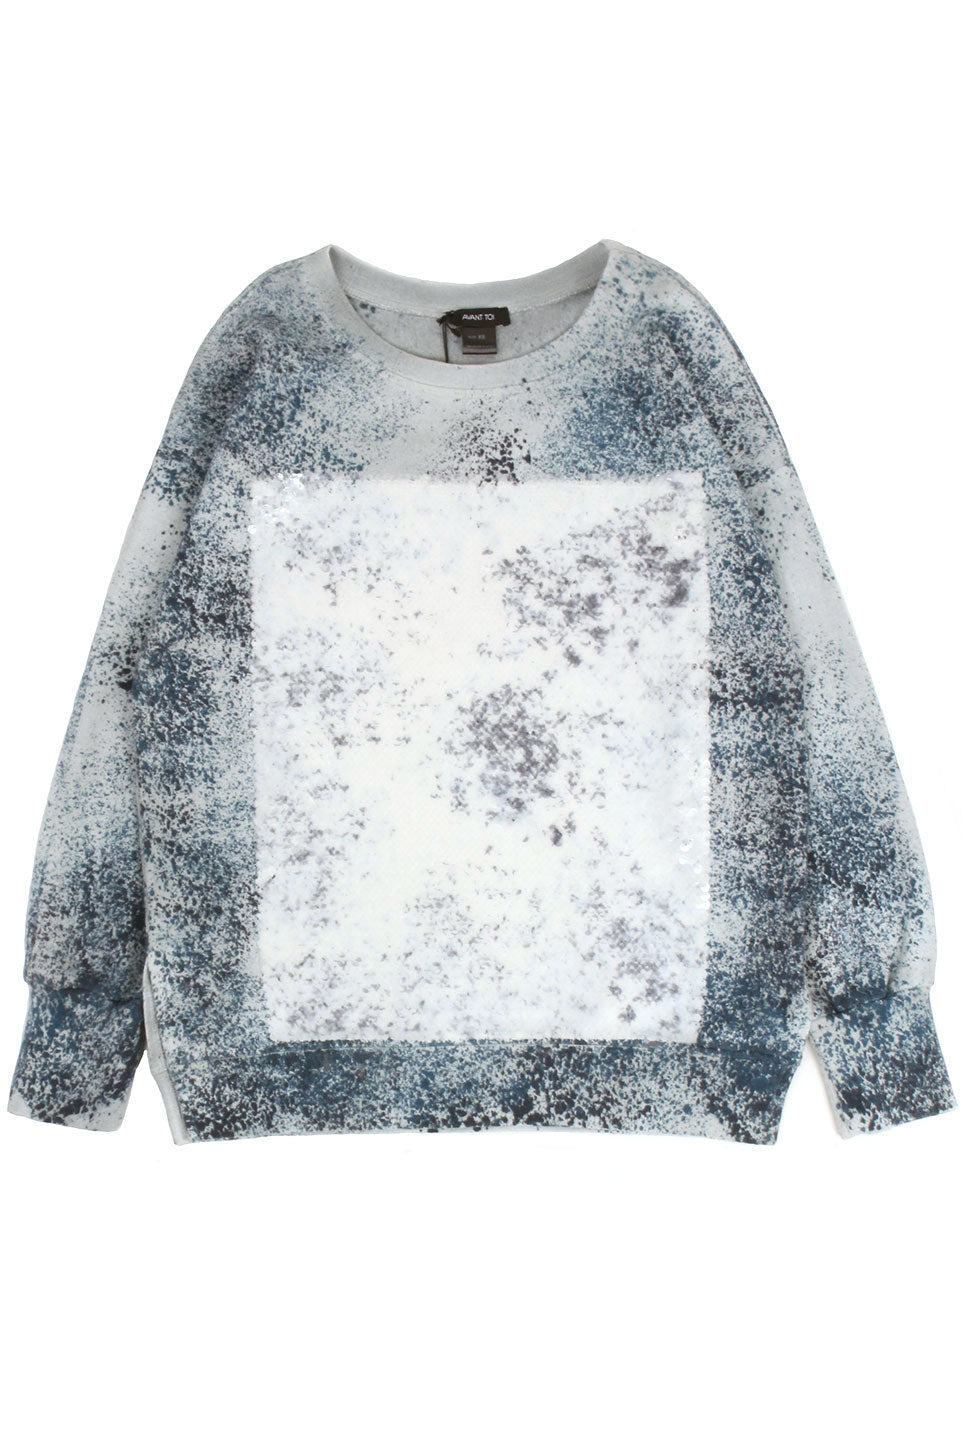 Sweater W/ Sequins and Powder Effect